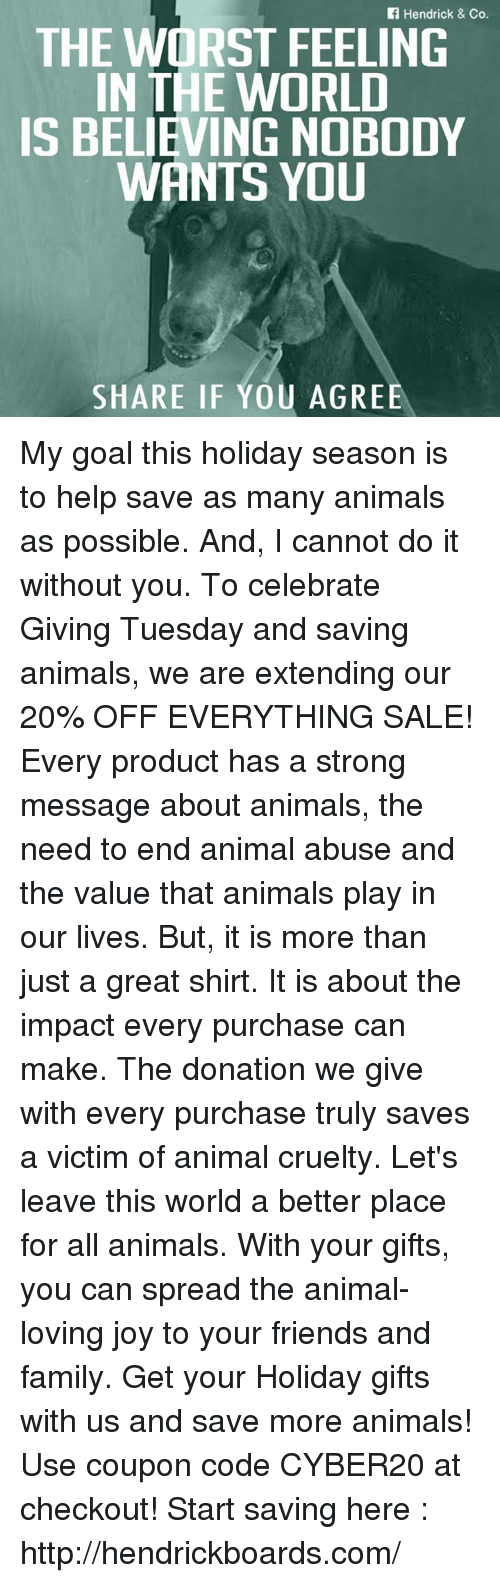 Animal Abuse: Hendrick & Co.  THE WORST FEELING  IN THE WORLD  IS BELIEVING NOBODY  WANTS YOU  SHARE IF YOU AGREE My goal this holiday season is to help save as many animals as possible. And, I cannot do it without you. To celebrate Giving Tuesday and saving animals, we are extending our 20% OFF EVERYTHING SALE!    Every product has a strong message about animals, the need to end animal abuse and the value that animals play in our lives. But, it is more than just a great shirt. It is about the impact every purchase can make. The donation we give with every purchase truly saves a victim of animal cruelty.    Let's leave this world a better place for all animals. With your gifts, you can spread the animal-loving joy to your friends and family.    Get your Holiday gifts with us and save more animals! Use coupon code  CYBER20  at checkout!   Start saving here : http://hendrickboards.com/